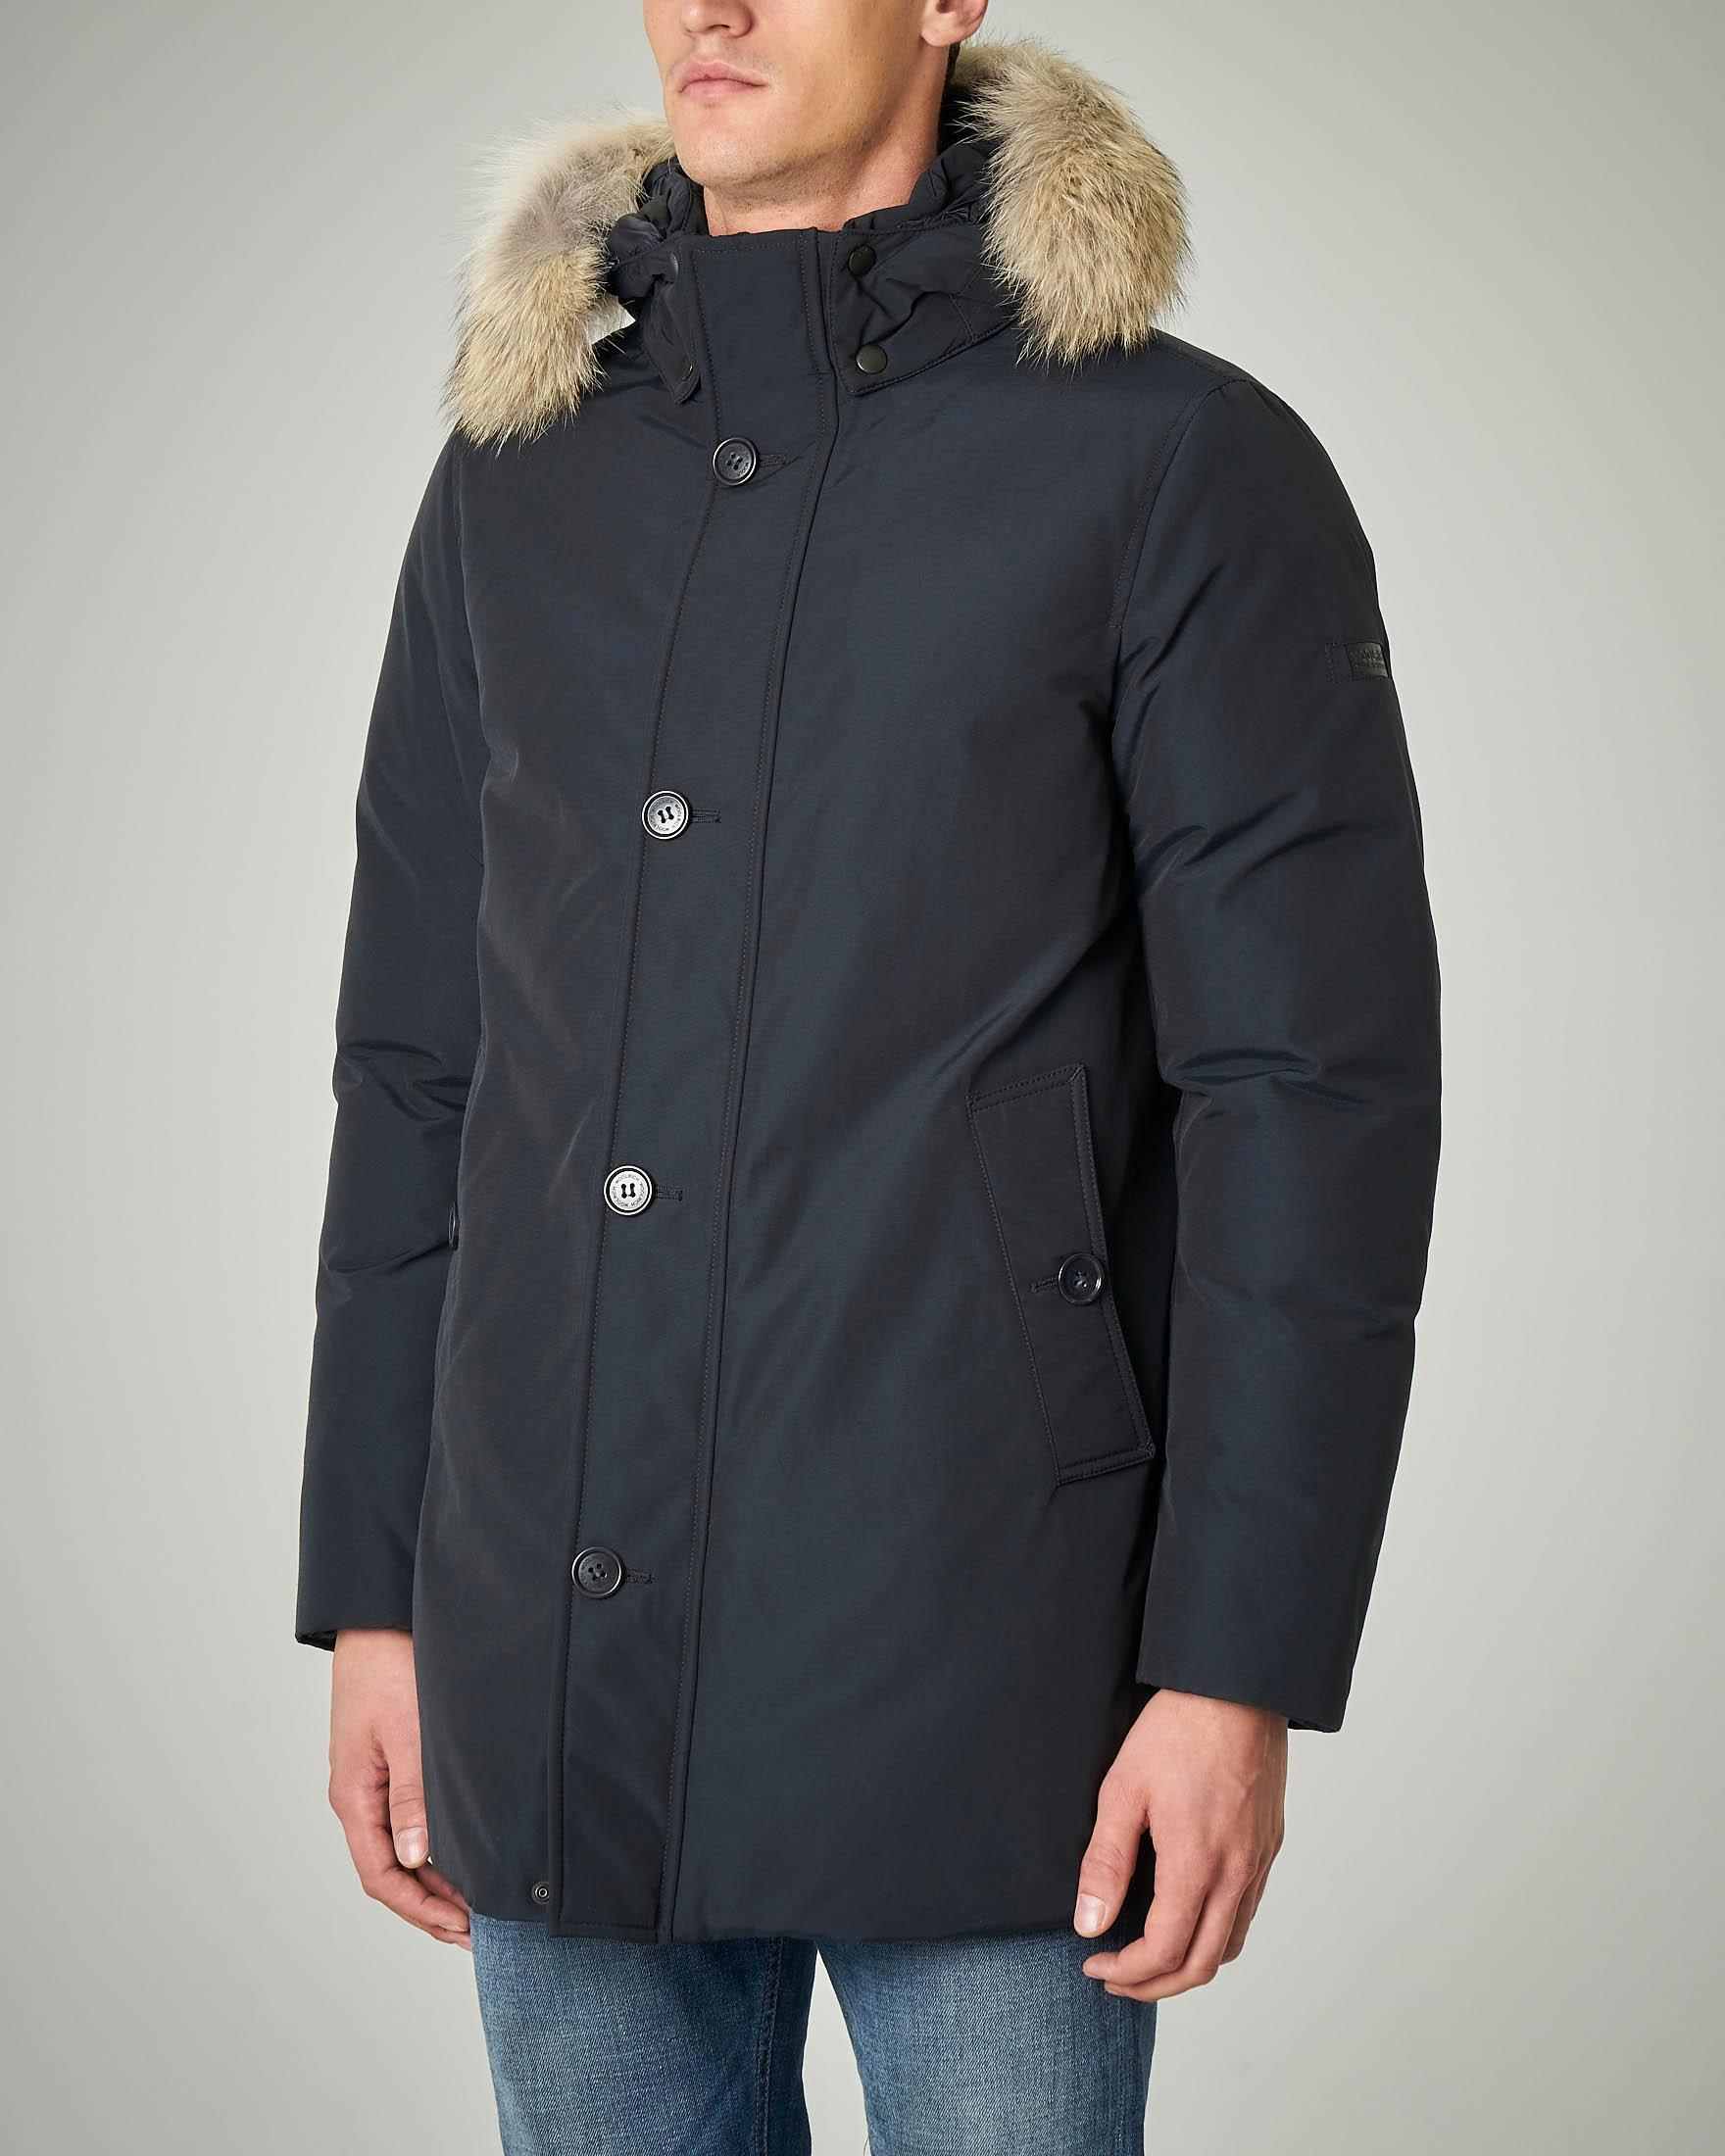 South Bay Parka blu